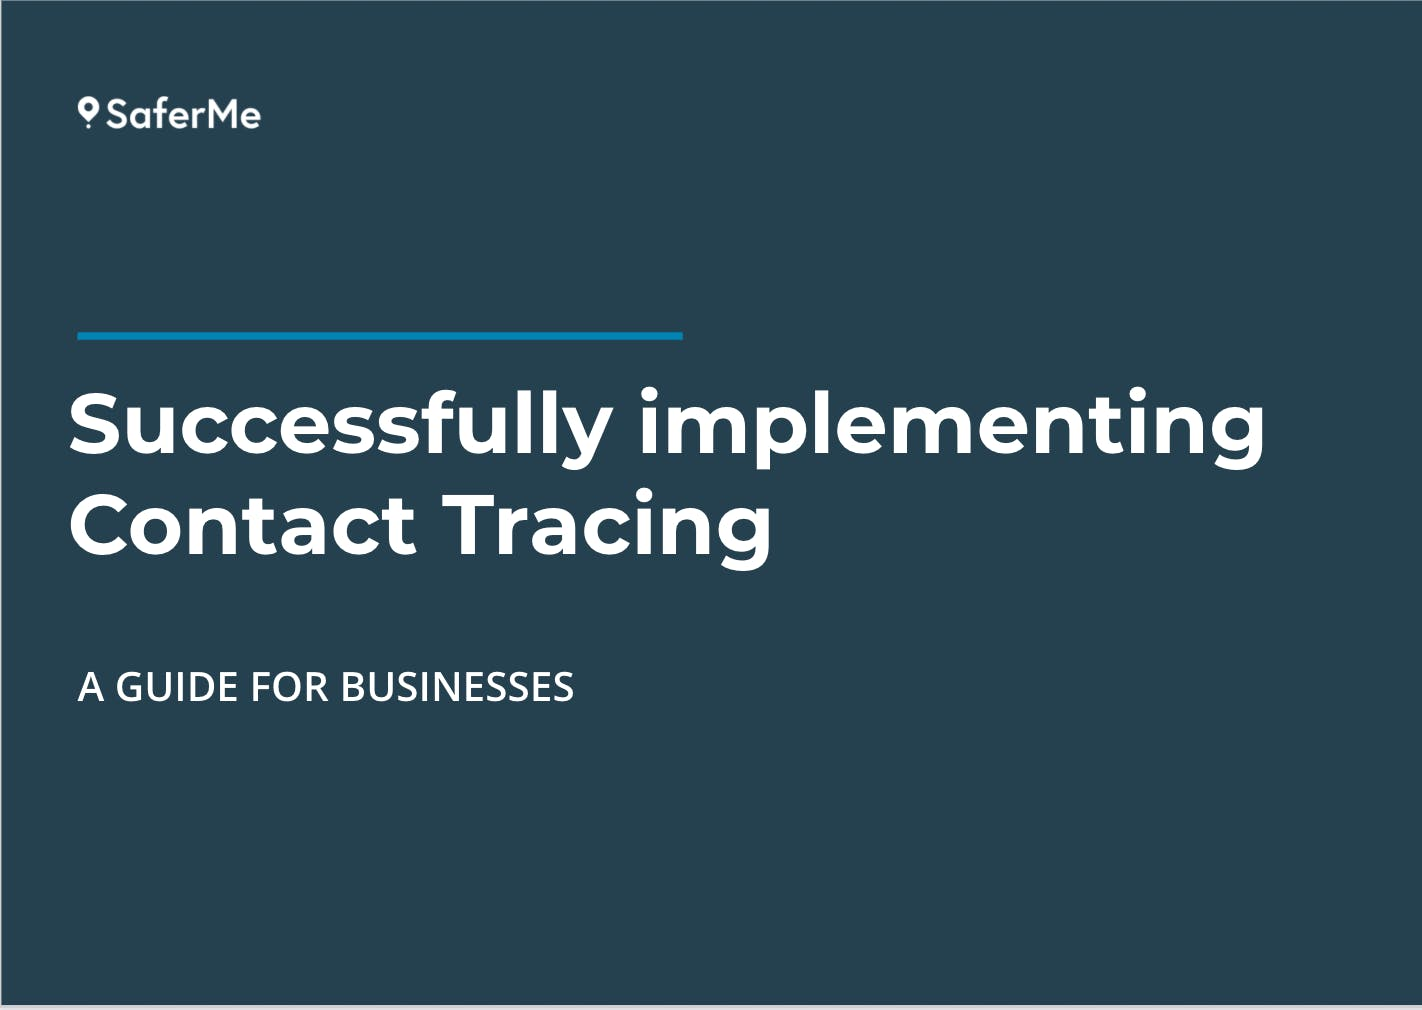 Guide to implementing contact tracing at work